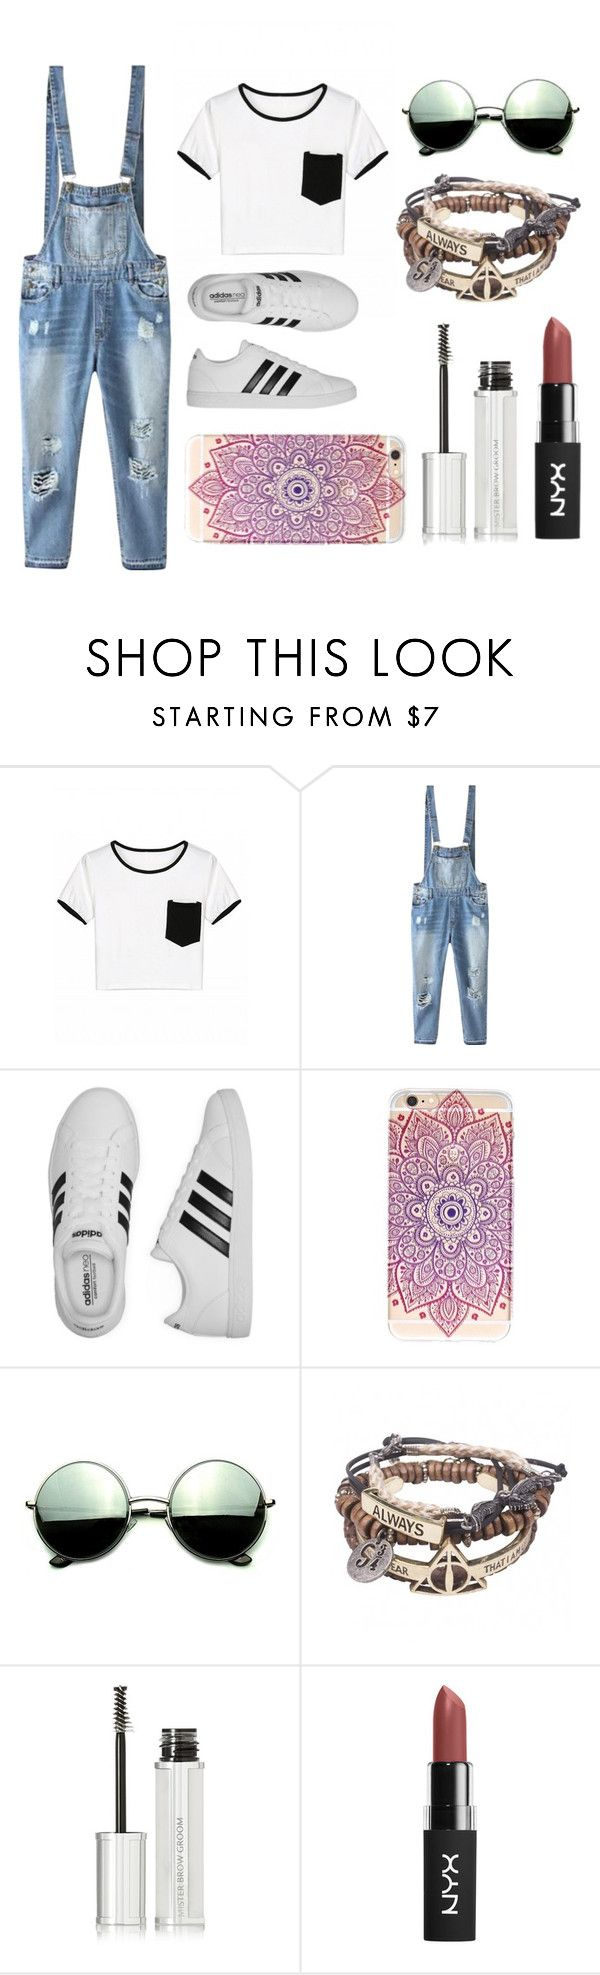 #164 by potato-cupcake on Polyvore featuring Relaxfeel, adidas, Revo and Givenchy